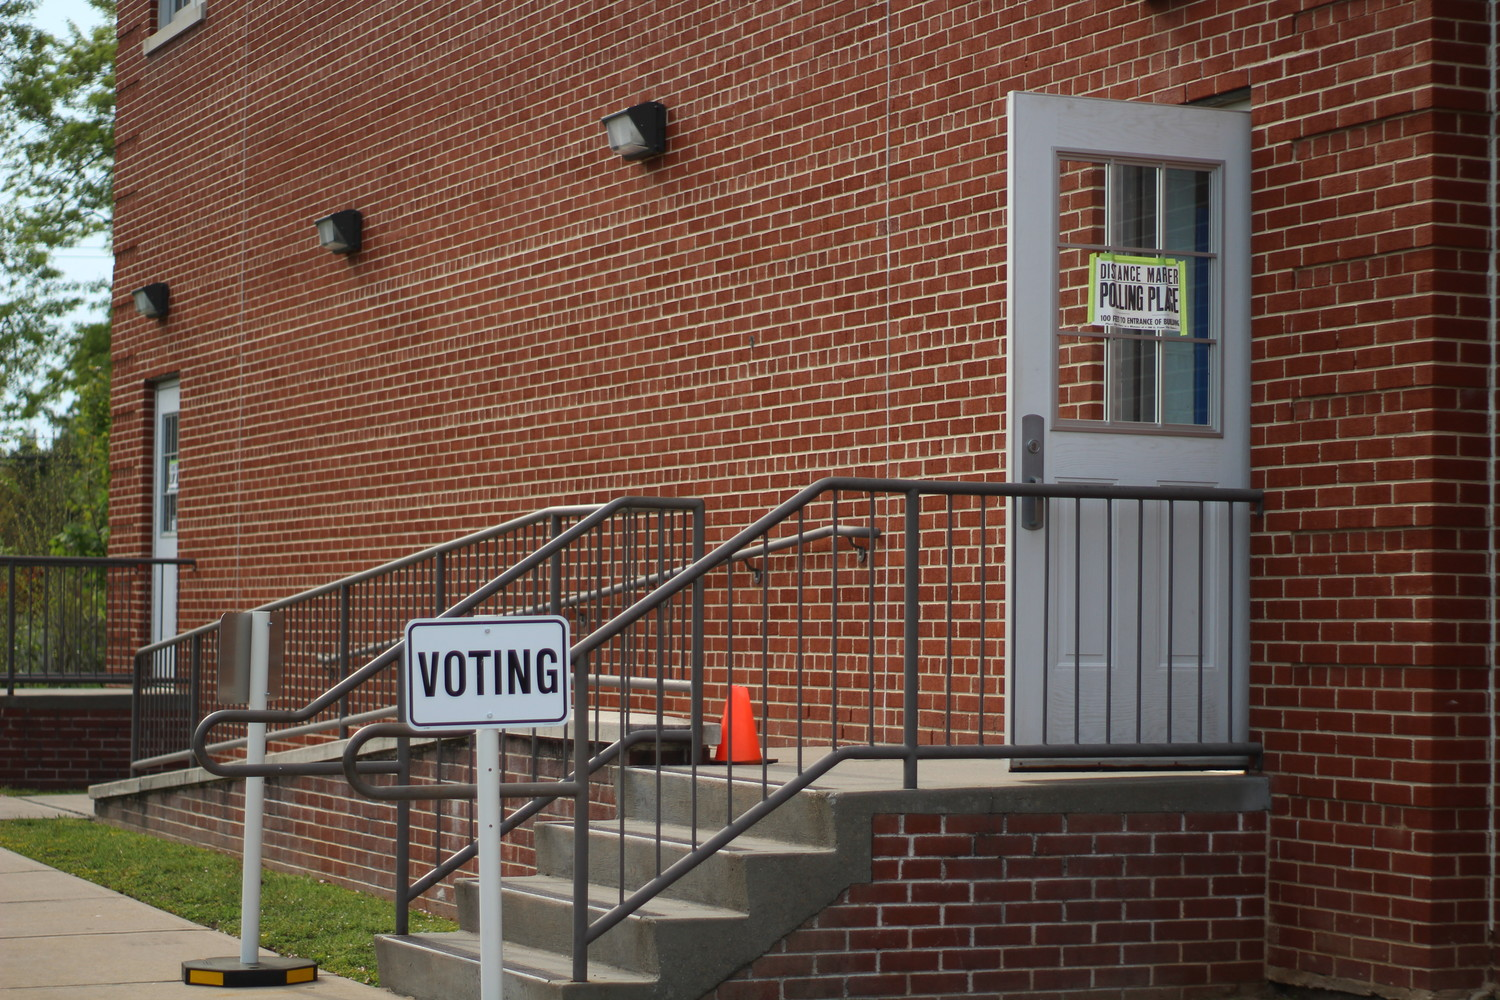 This year's budget vote turnout of 1,639 residents marked the second lowest turnout in 15 years for the Wantagh School District. Despite a period of fair weather, an evening flash storm caused issues for the voting public.